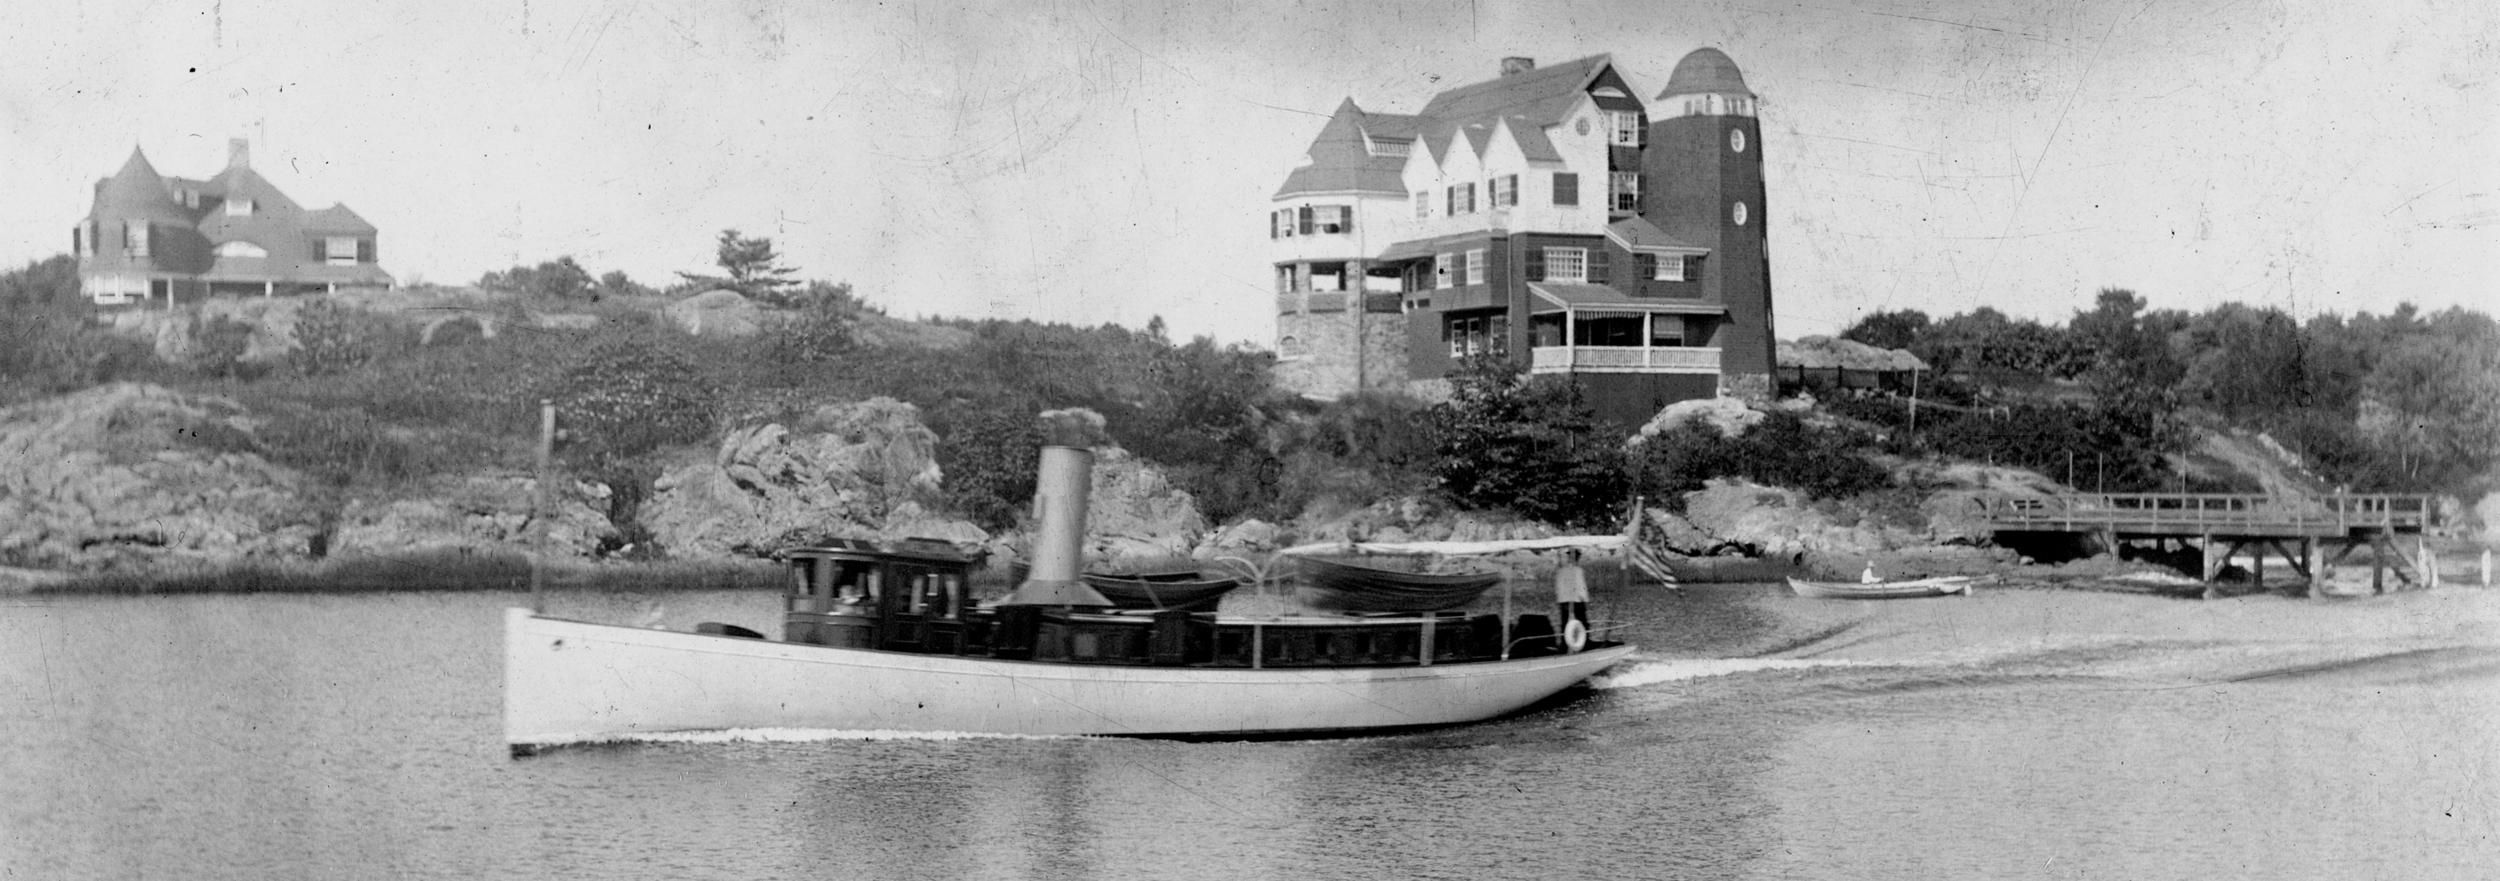 River House, 1885